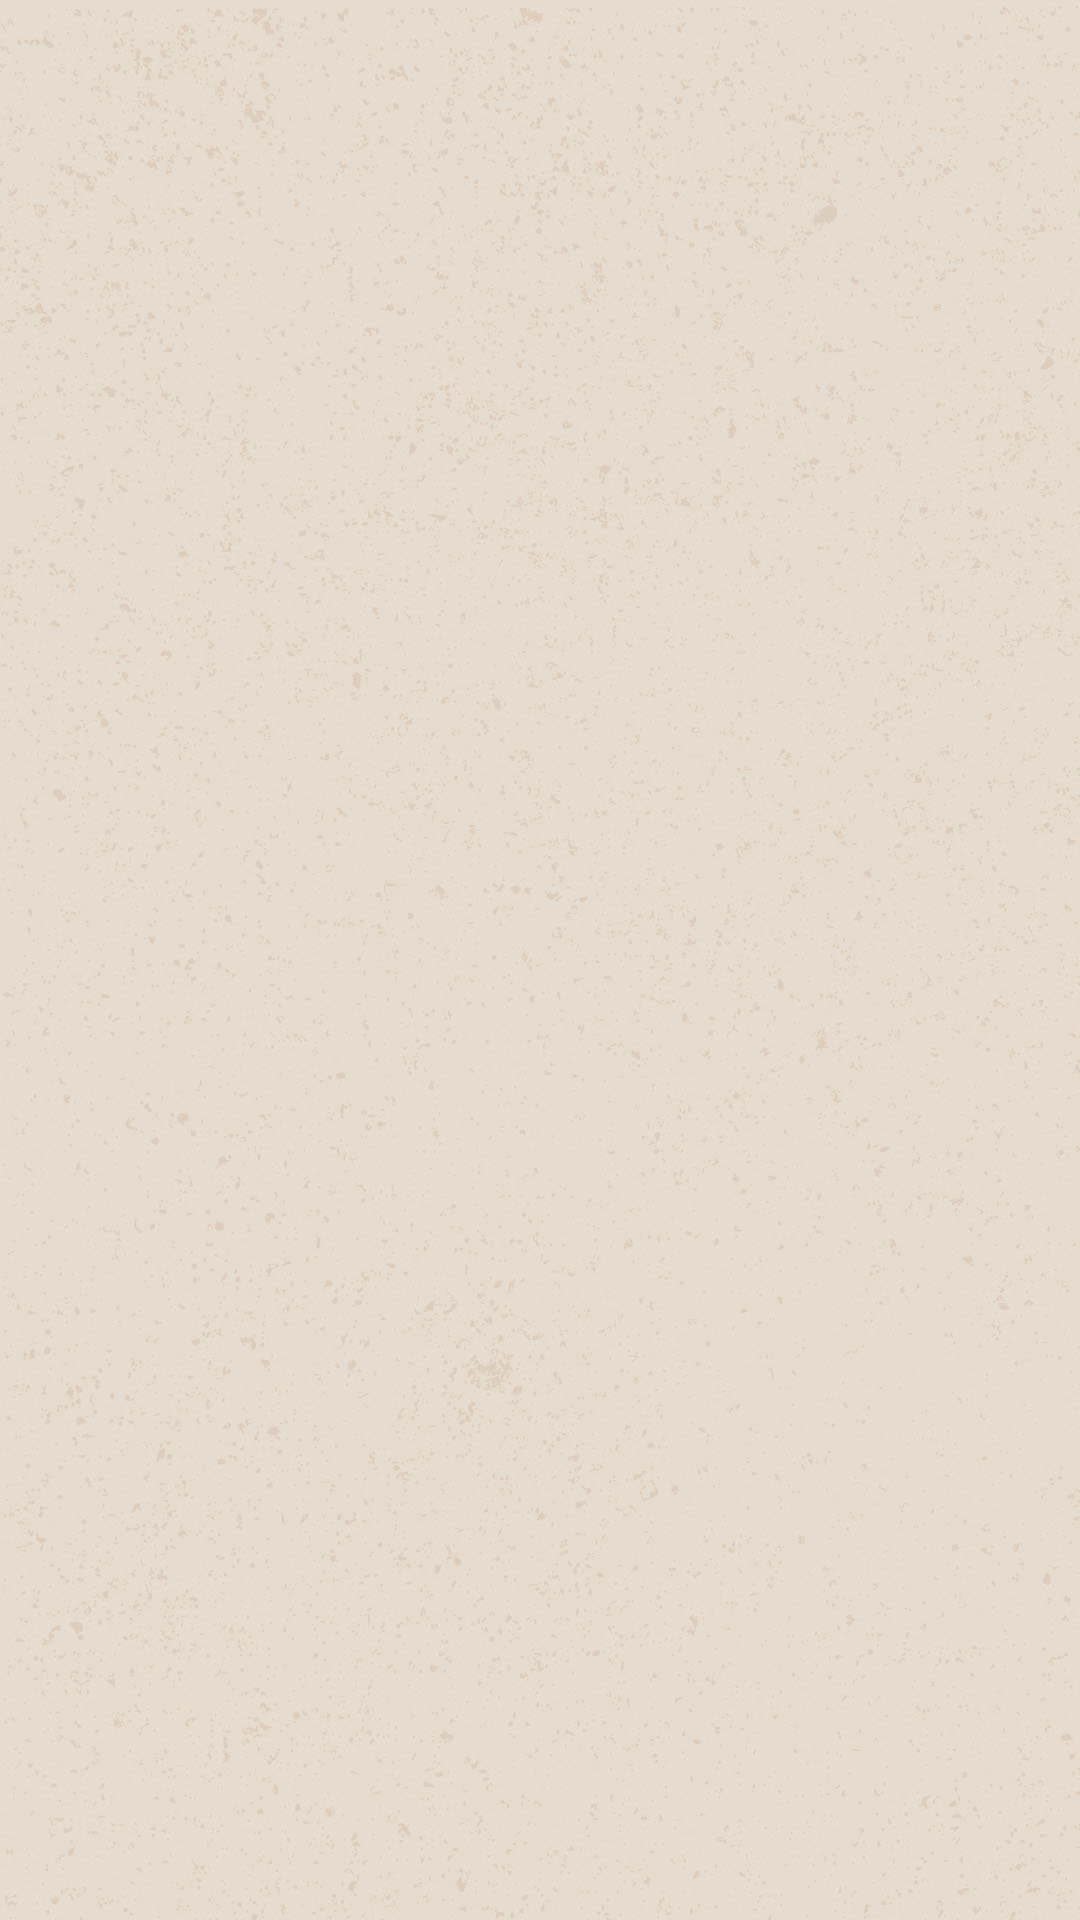 tan-background